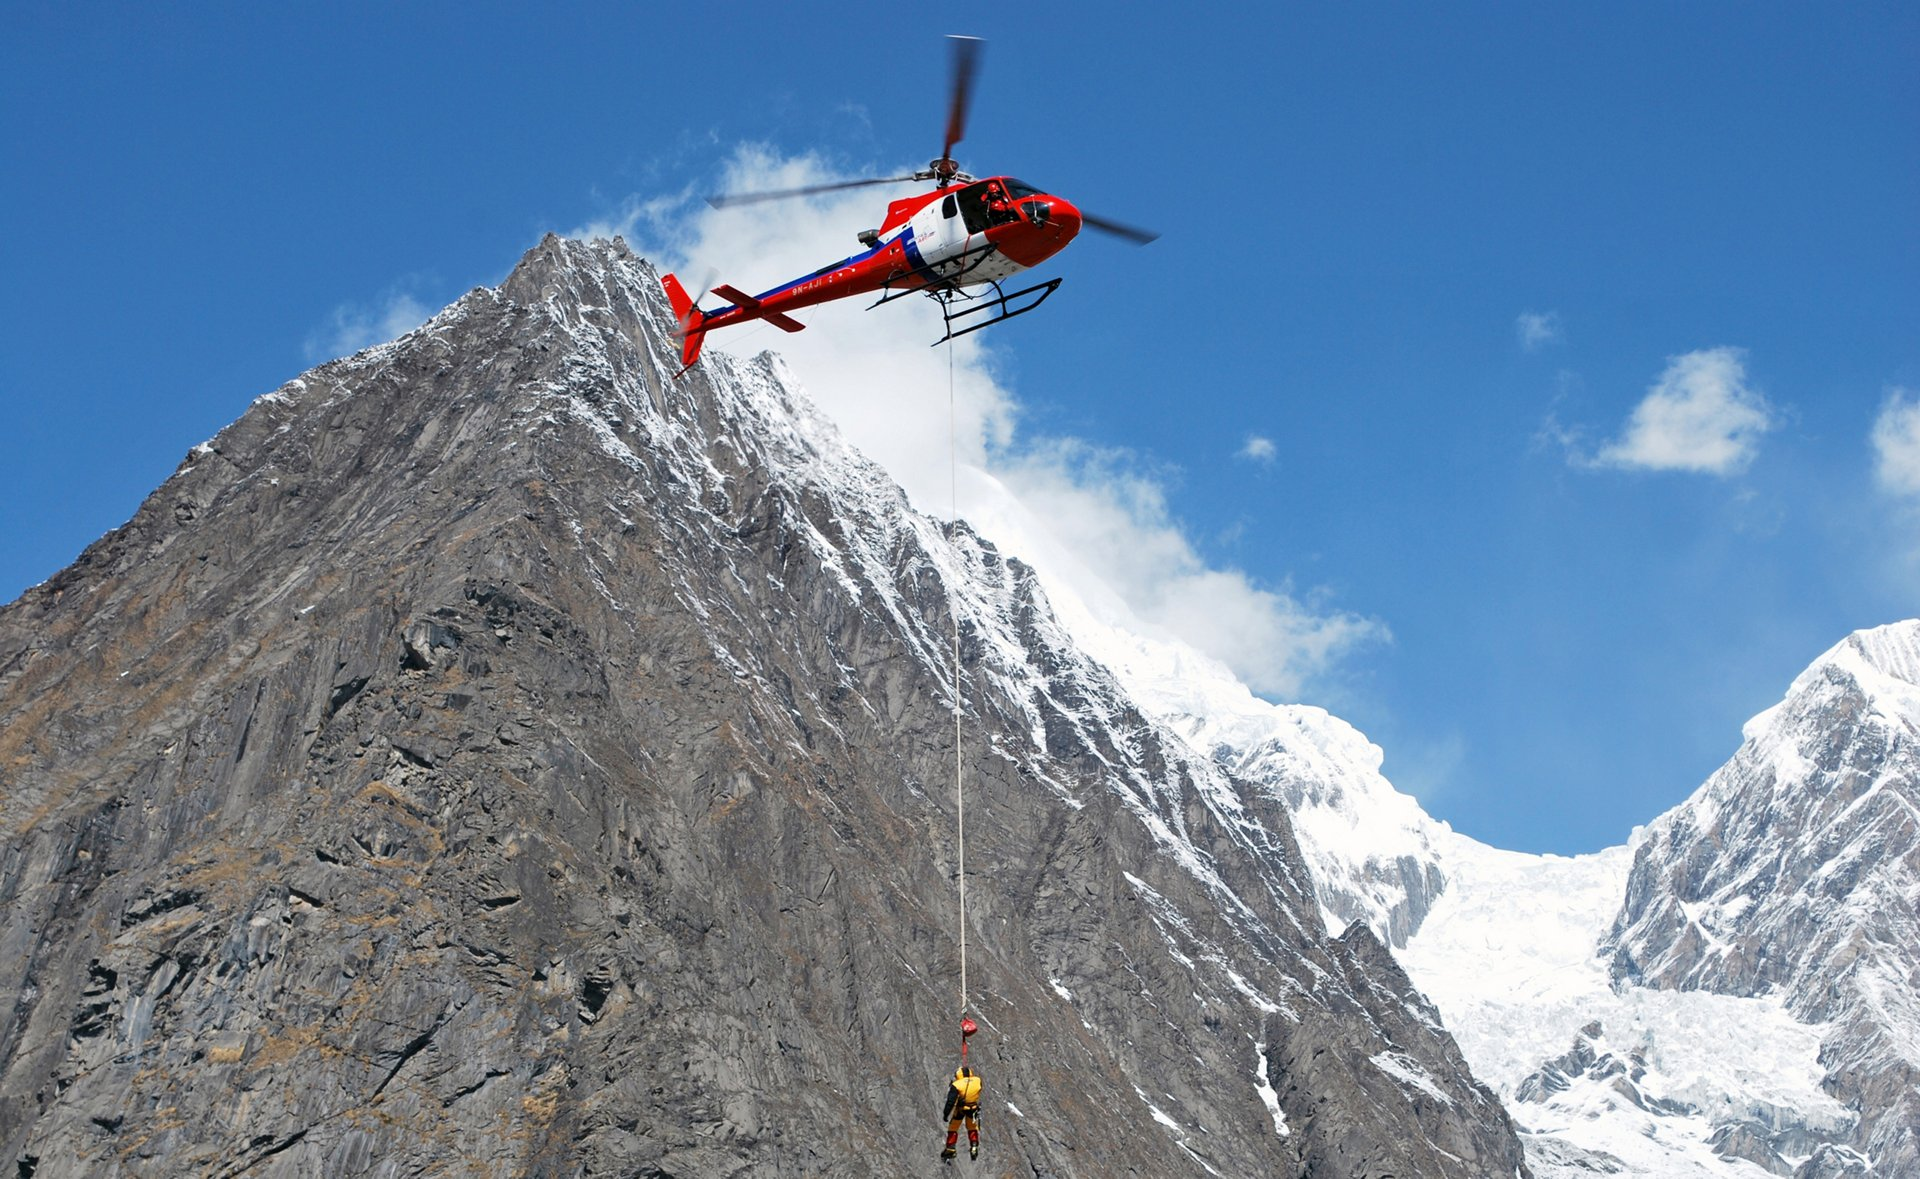 Pilots and helicopters carry out thousands of mountain rescues in the Himalayas annually. Pictured here, an H125 from Fishtail Air performs a rescue mission.